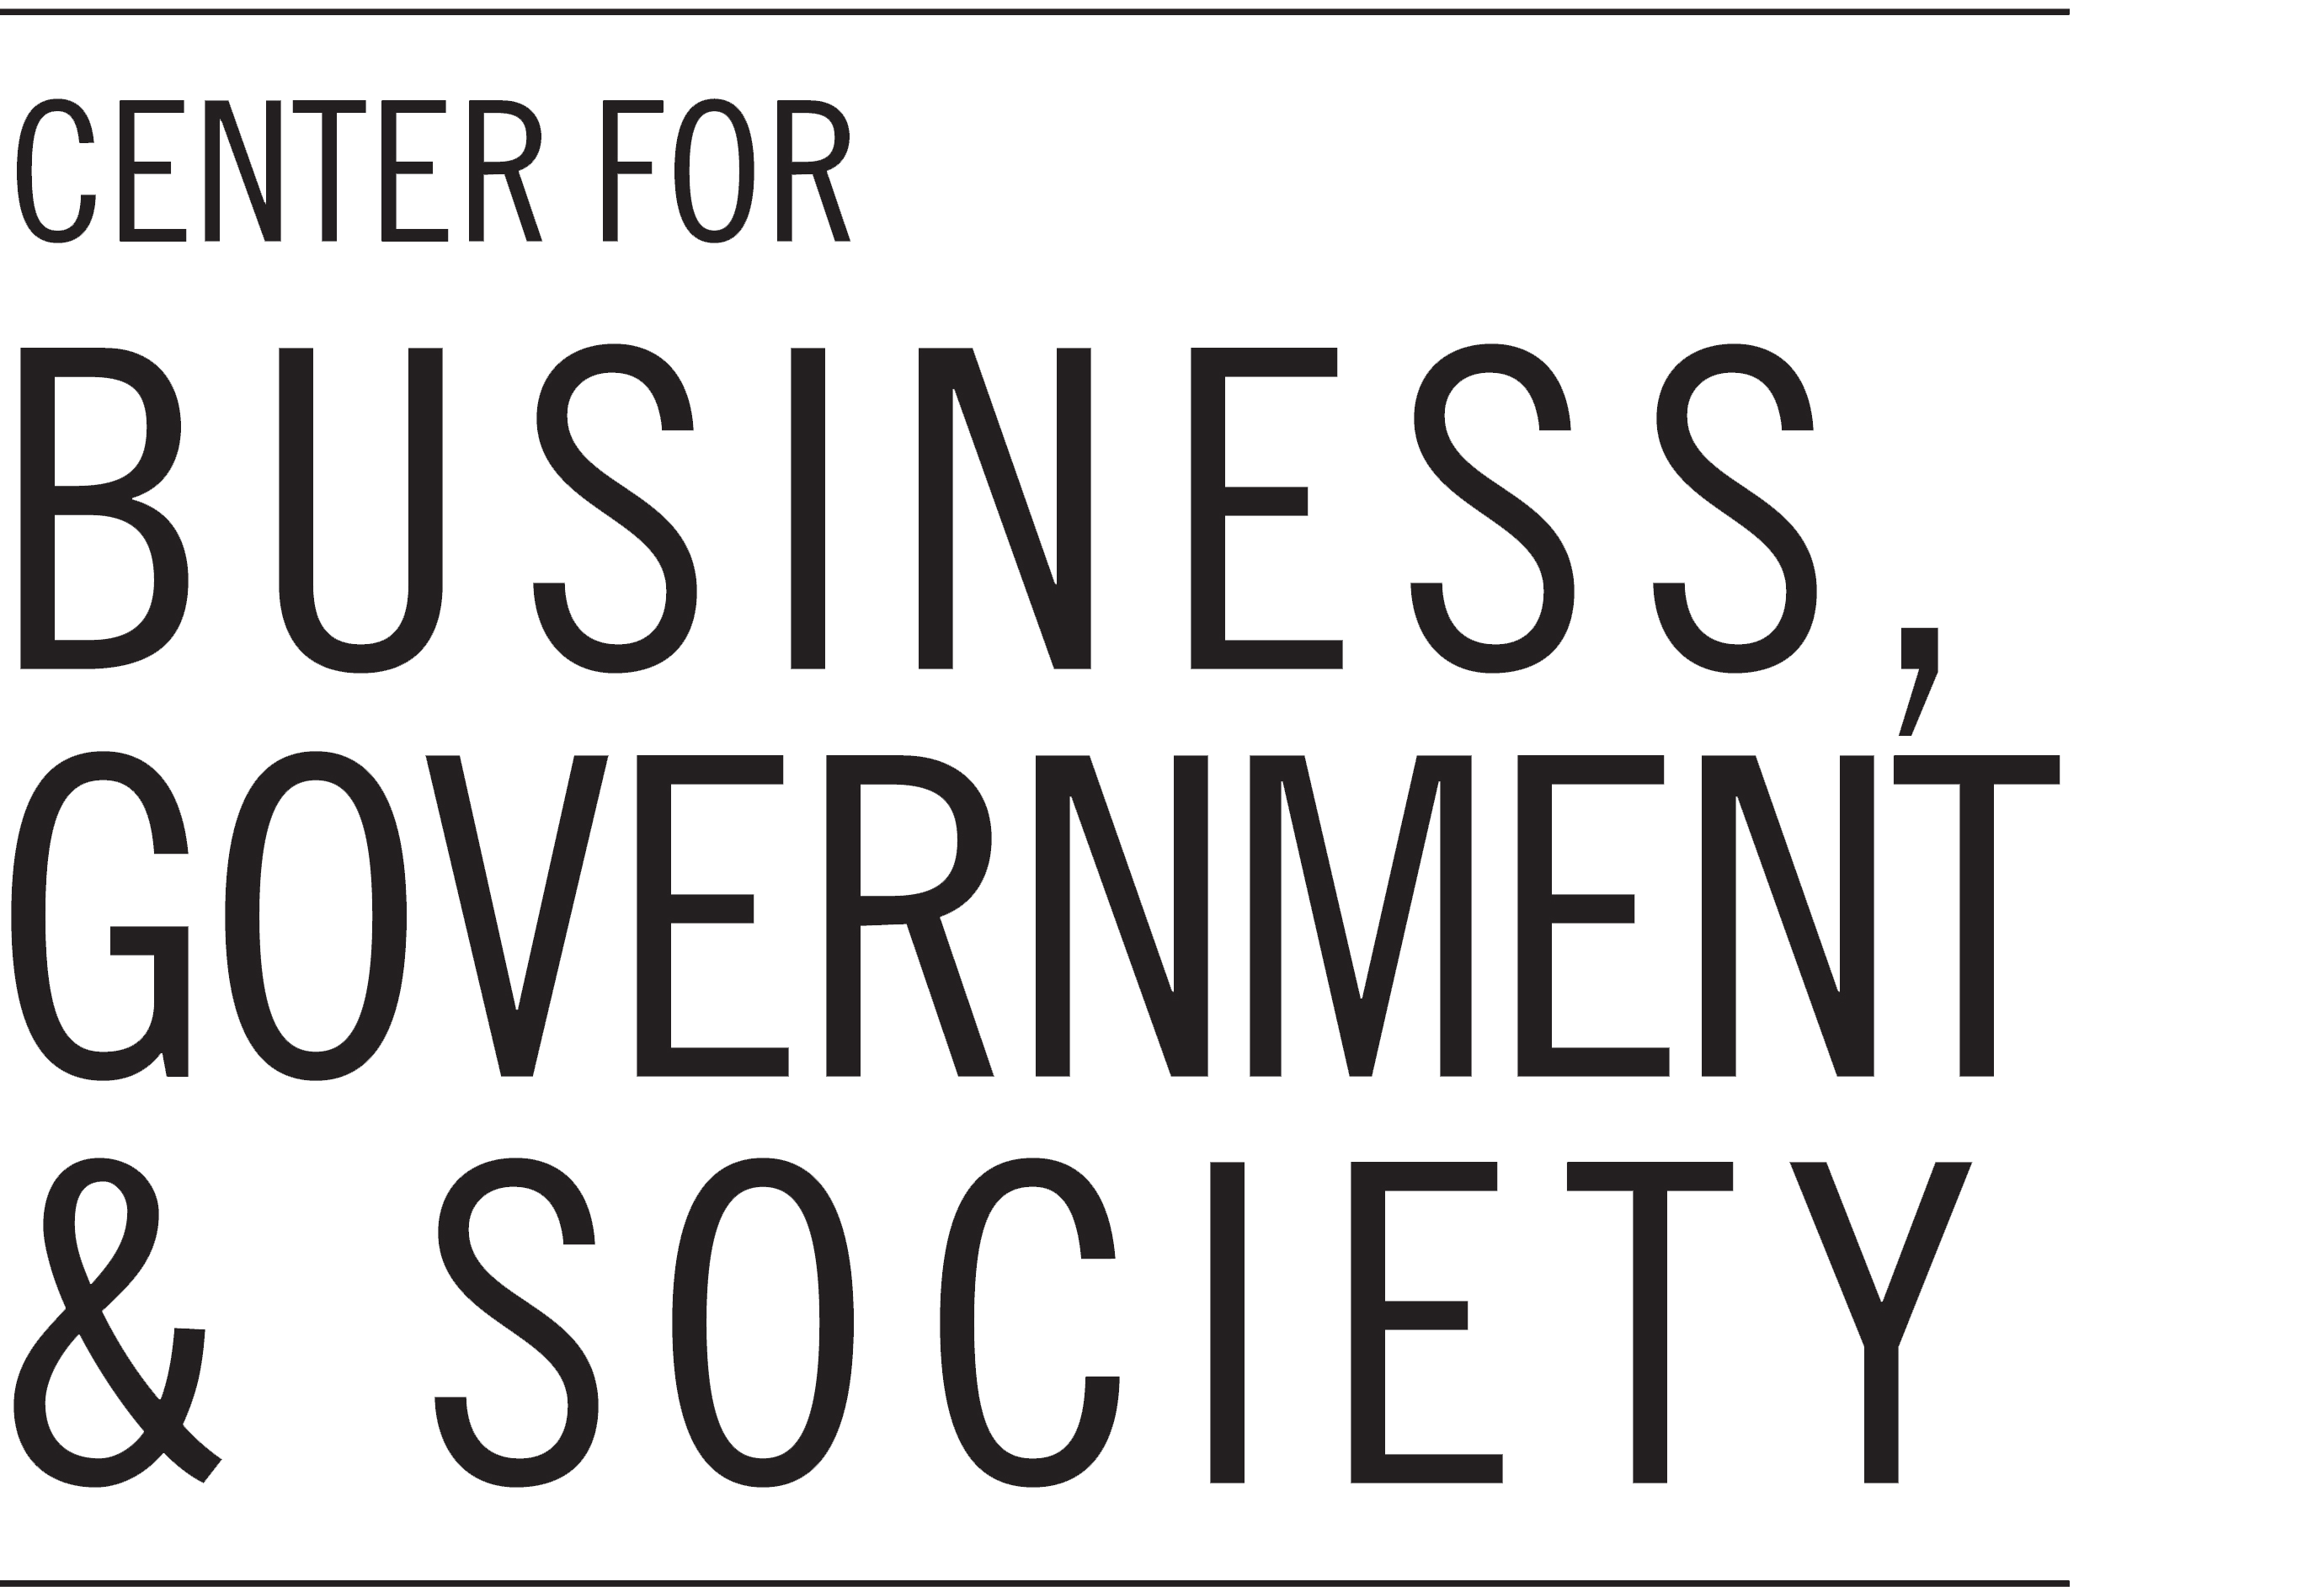 Center for Business, Government & Society logo